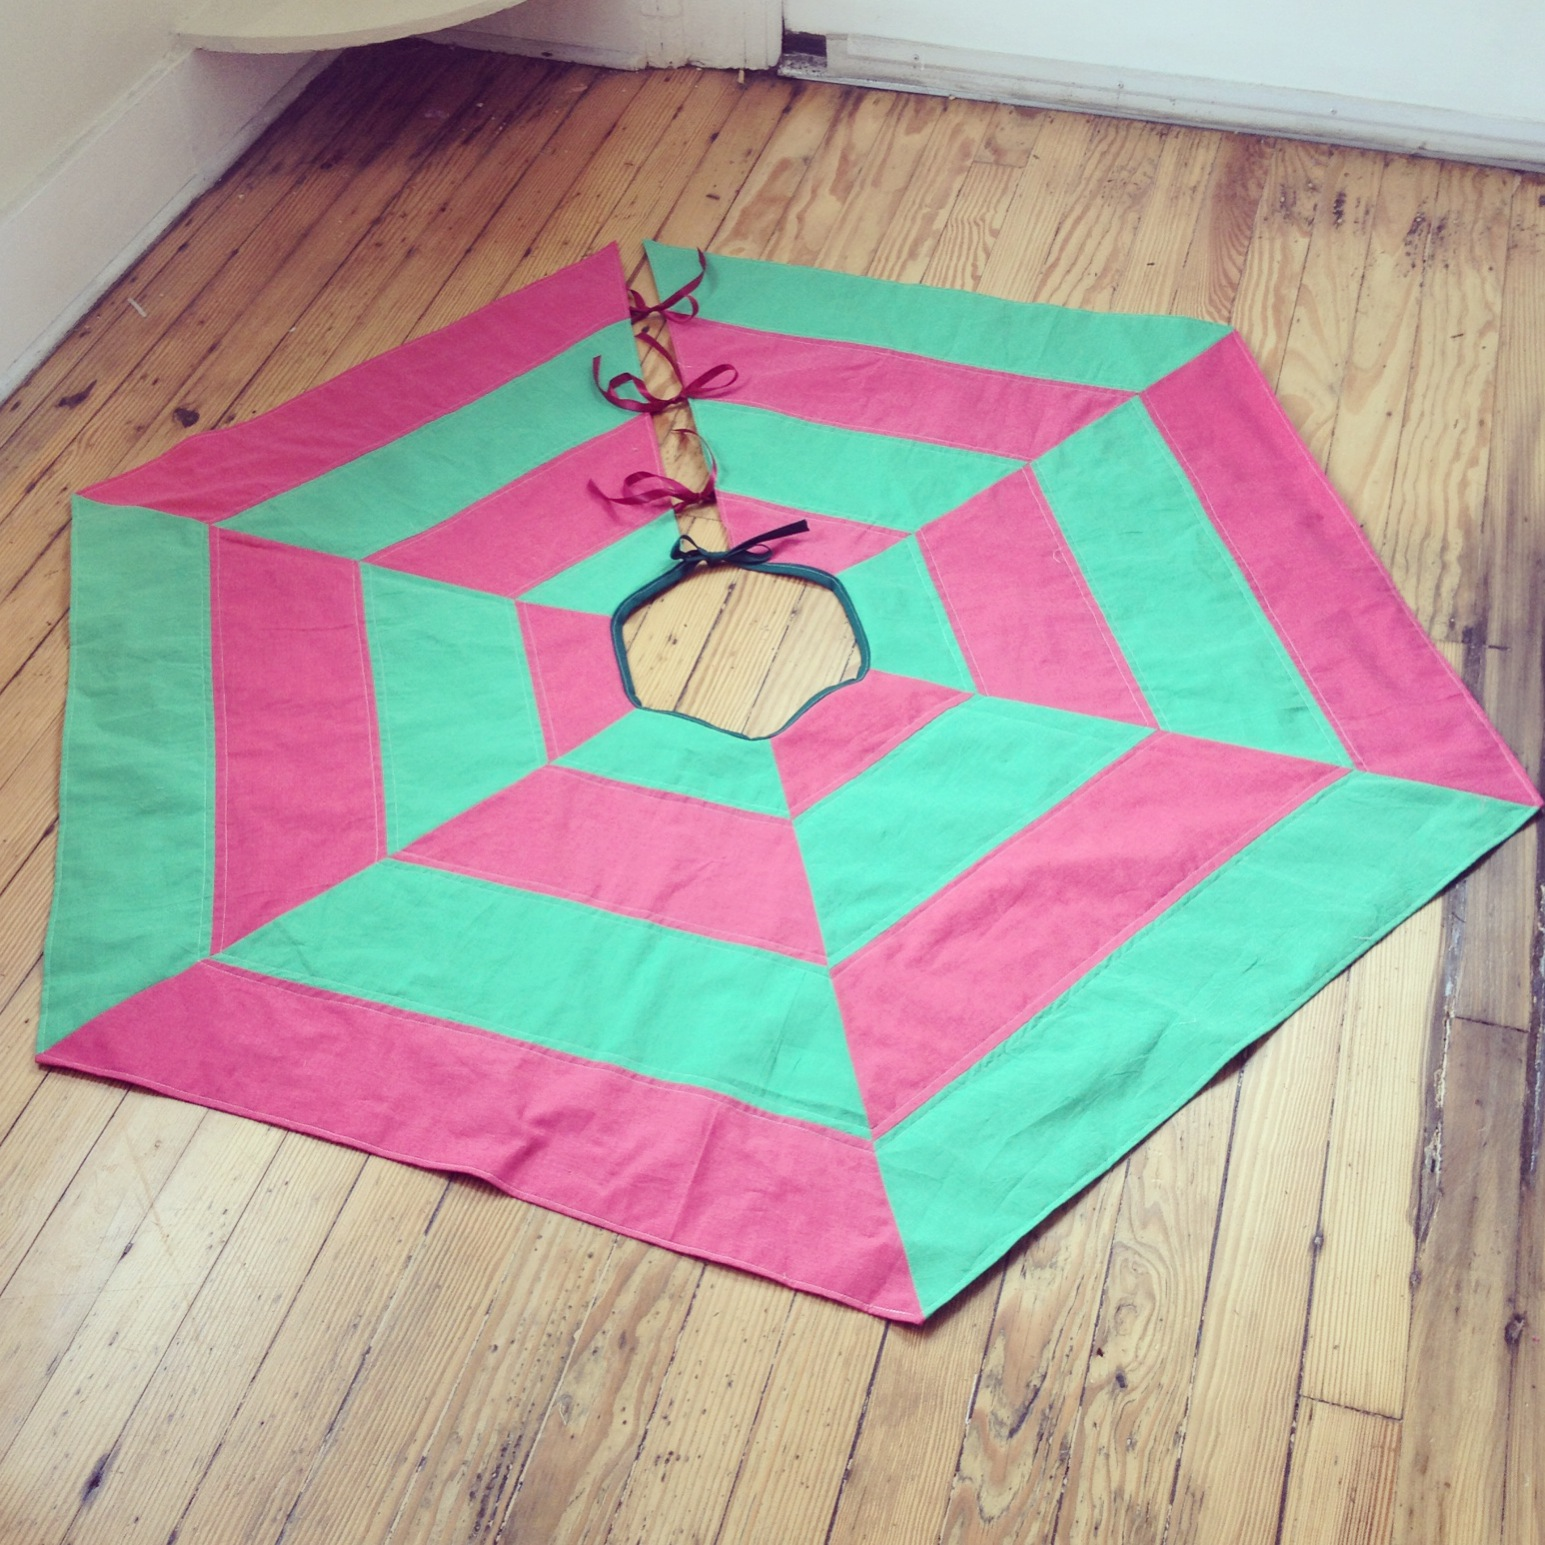 Quilted Tree Skirt- A great Beginner Project!